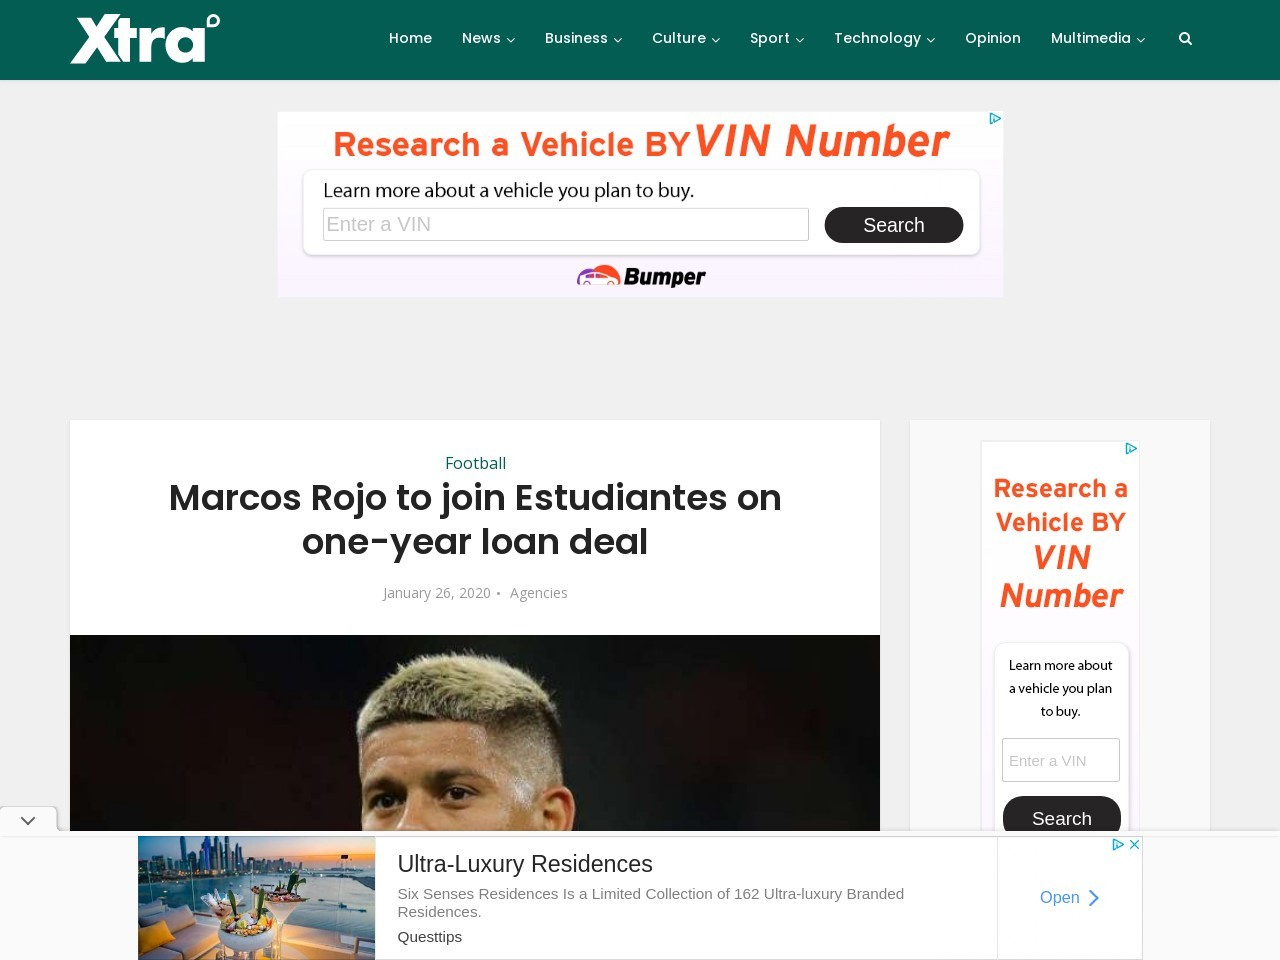 Marcos Rojo to join Estudiantes on one-year loan deal